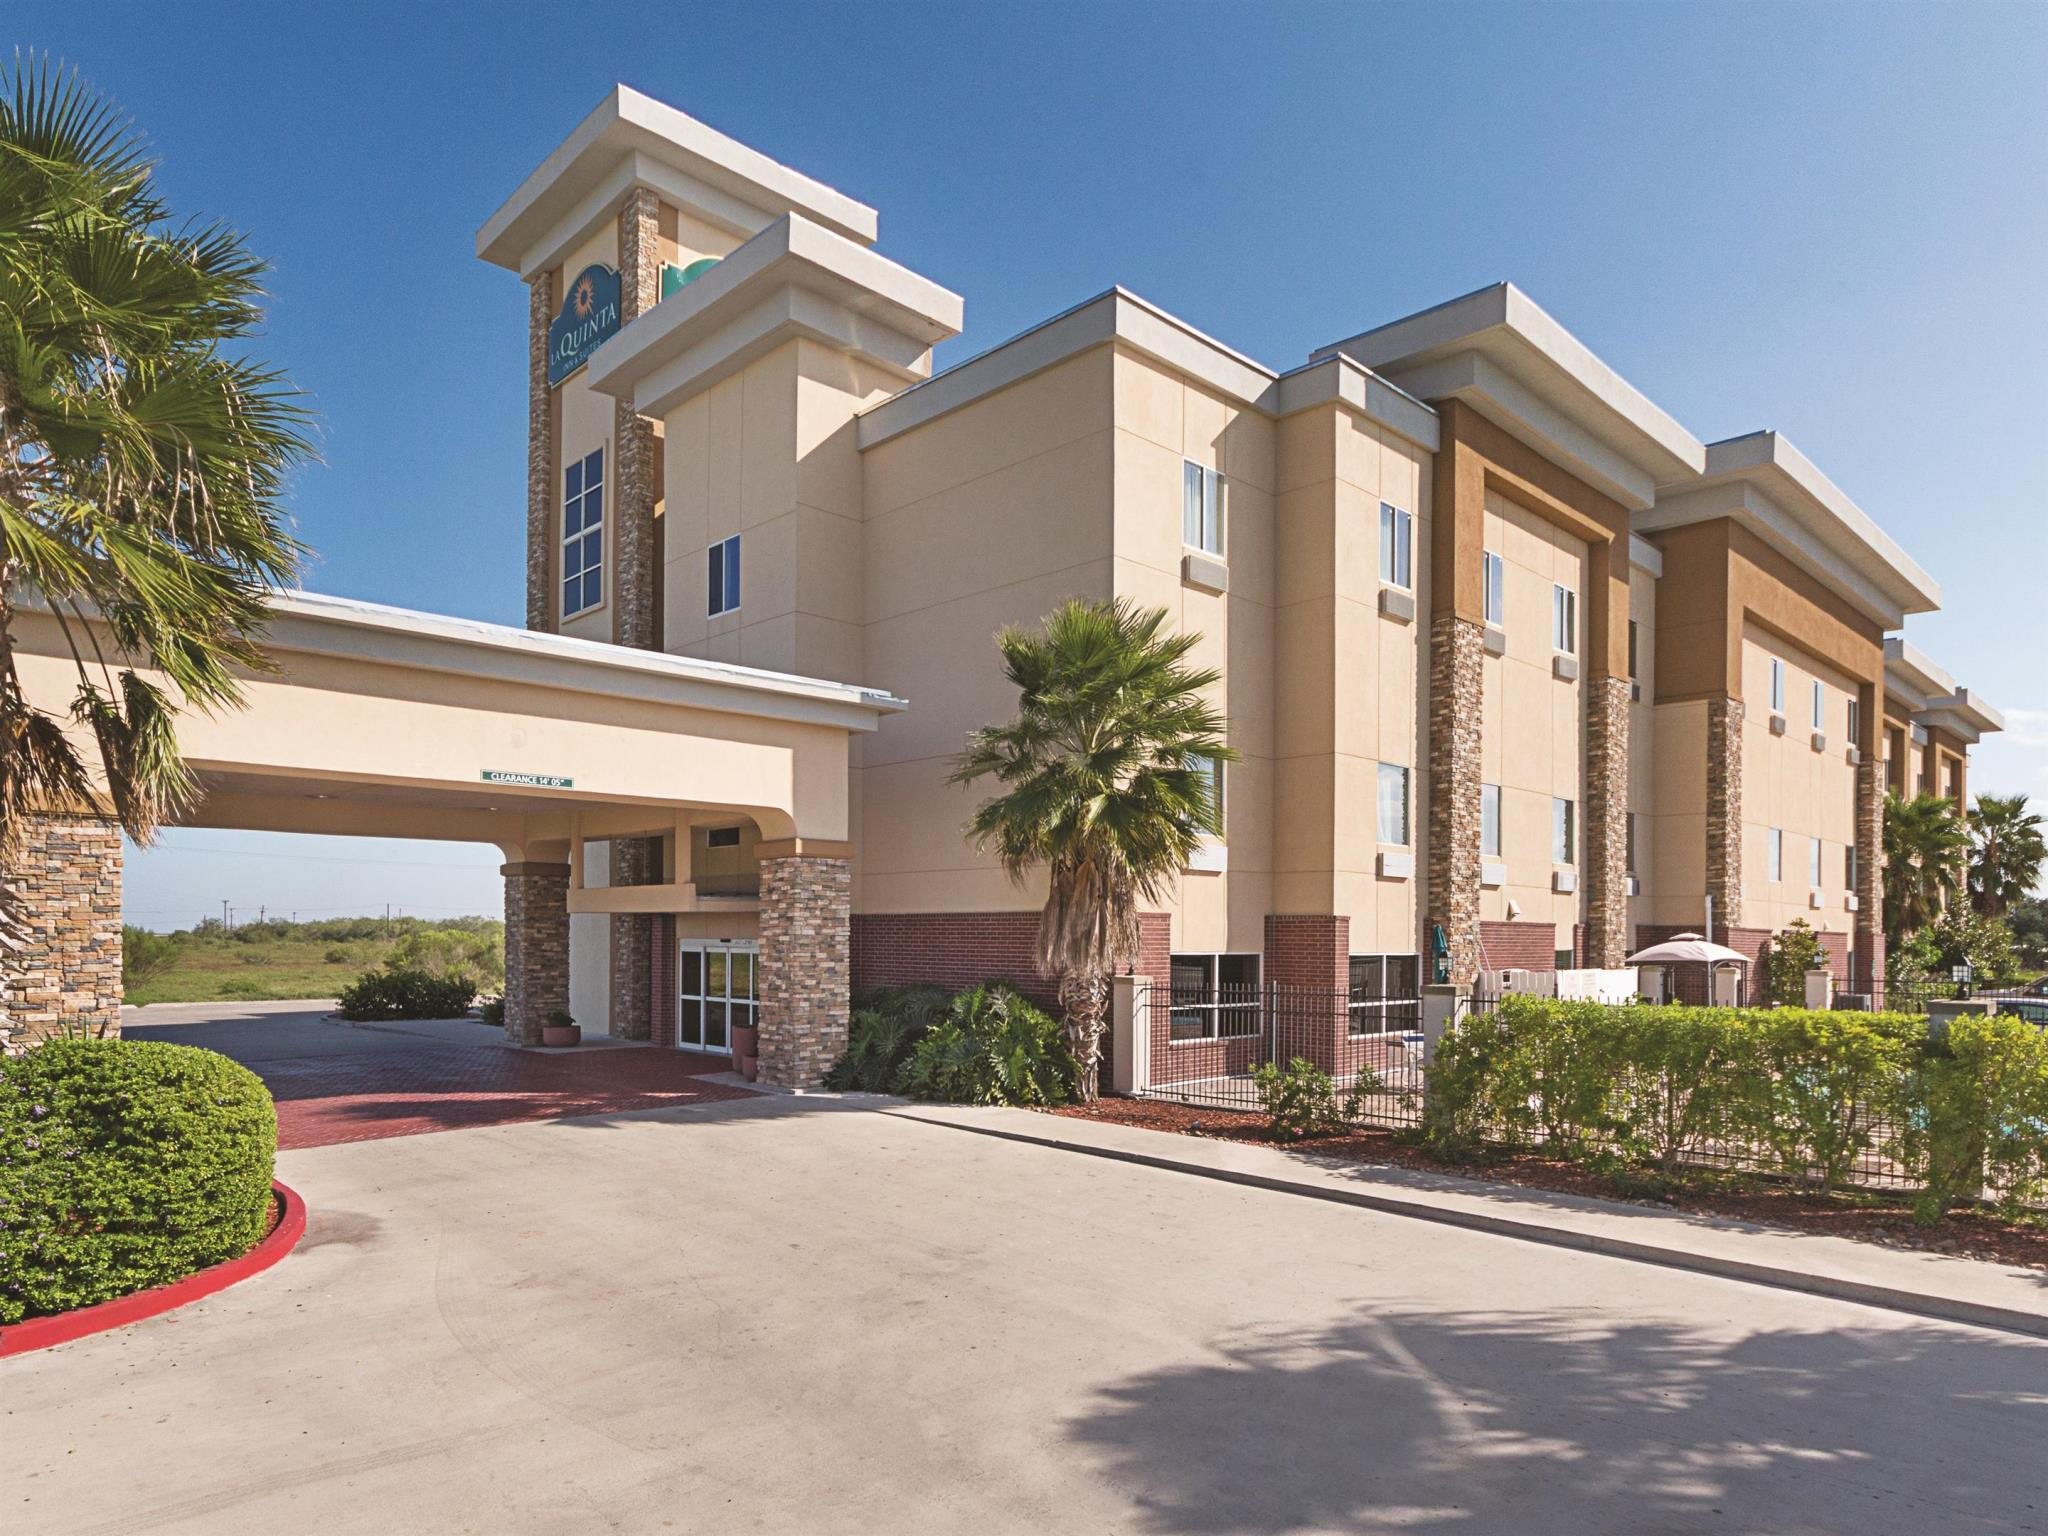 La Quinta Inn And Suites By Wyndham Mathis